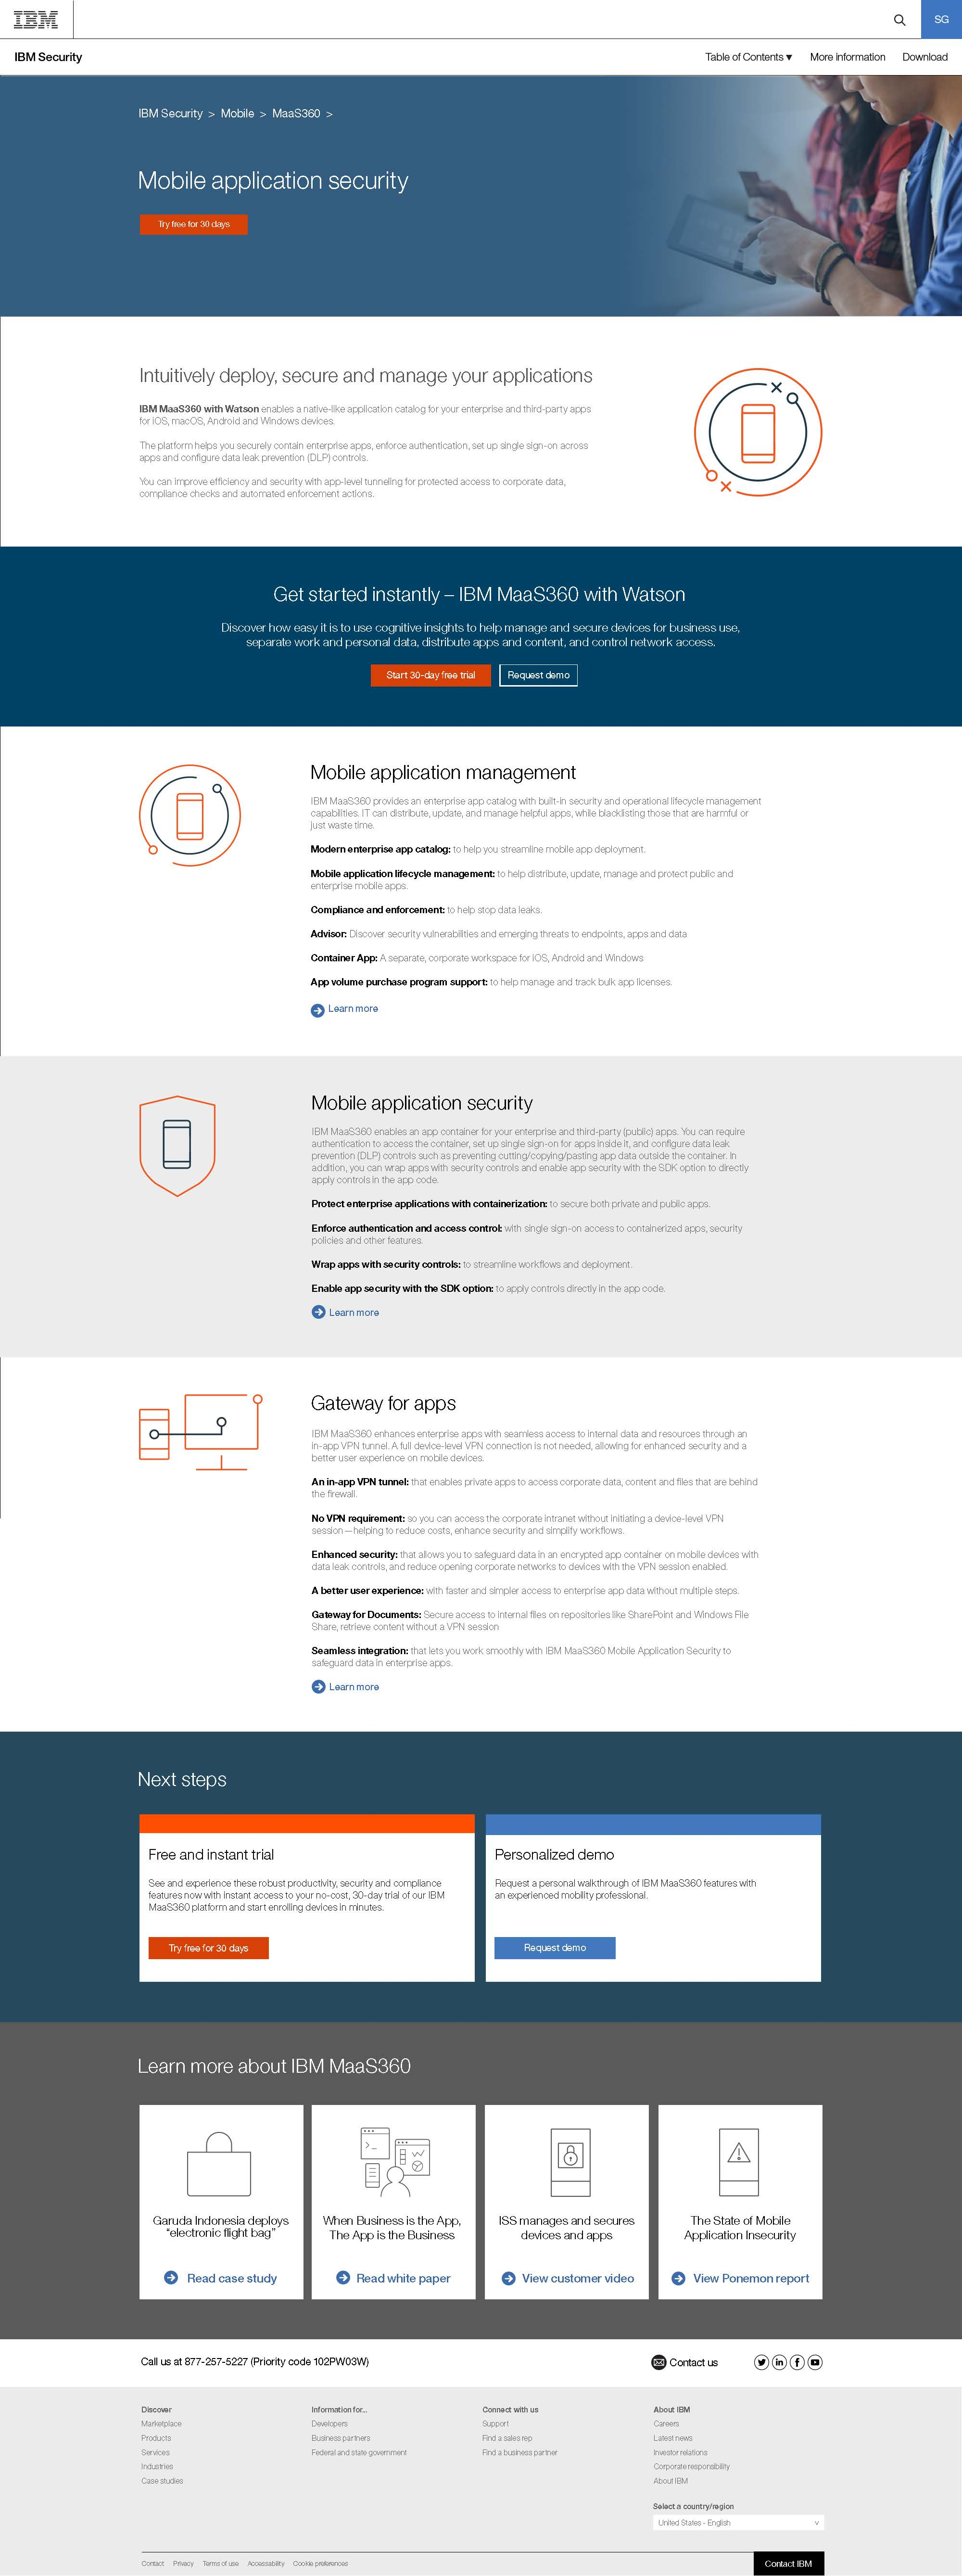 MaaS360-Mobile-Application-Security